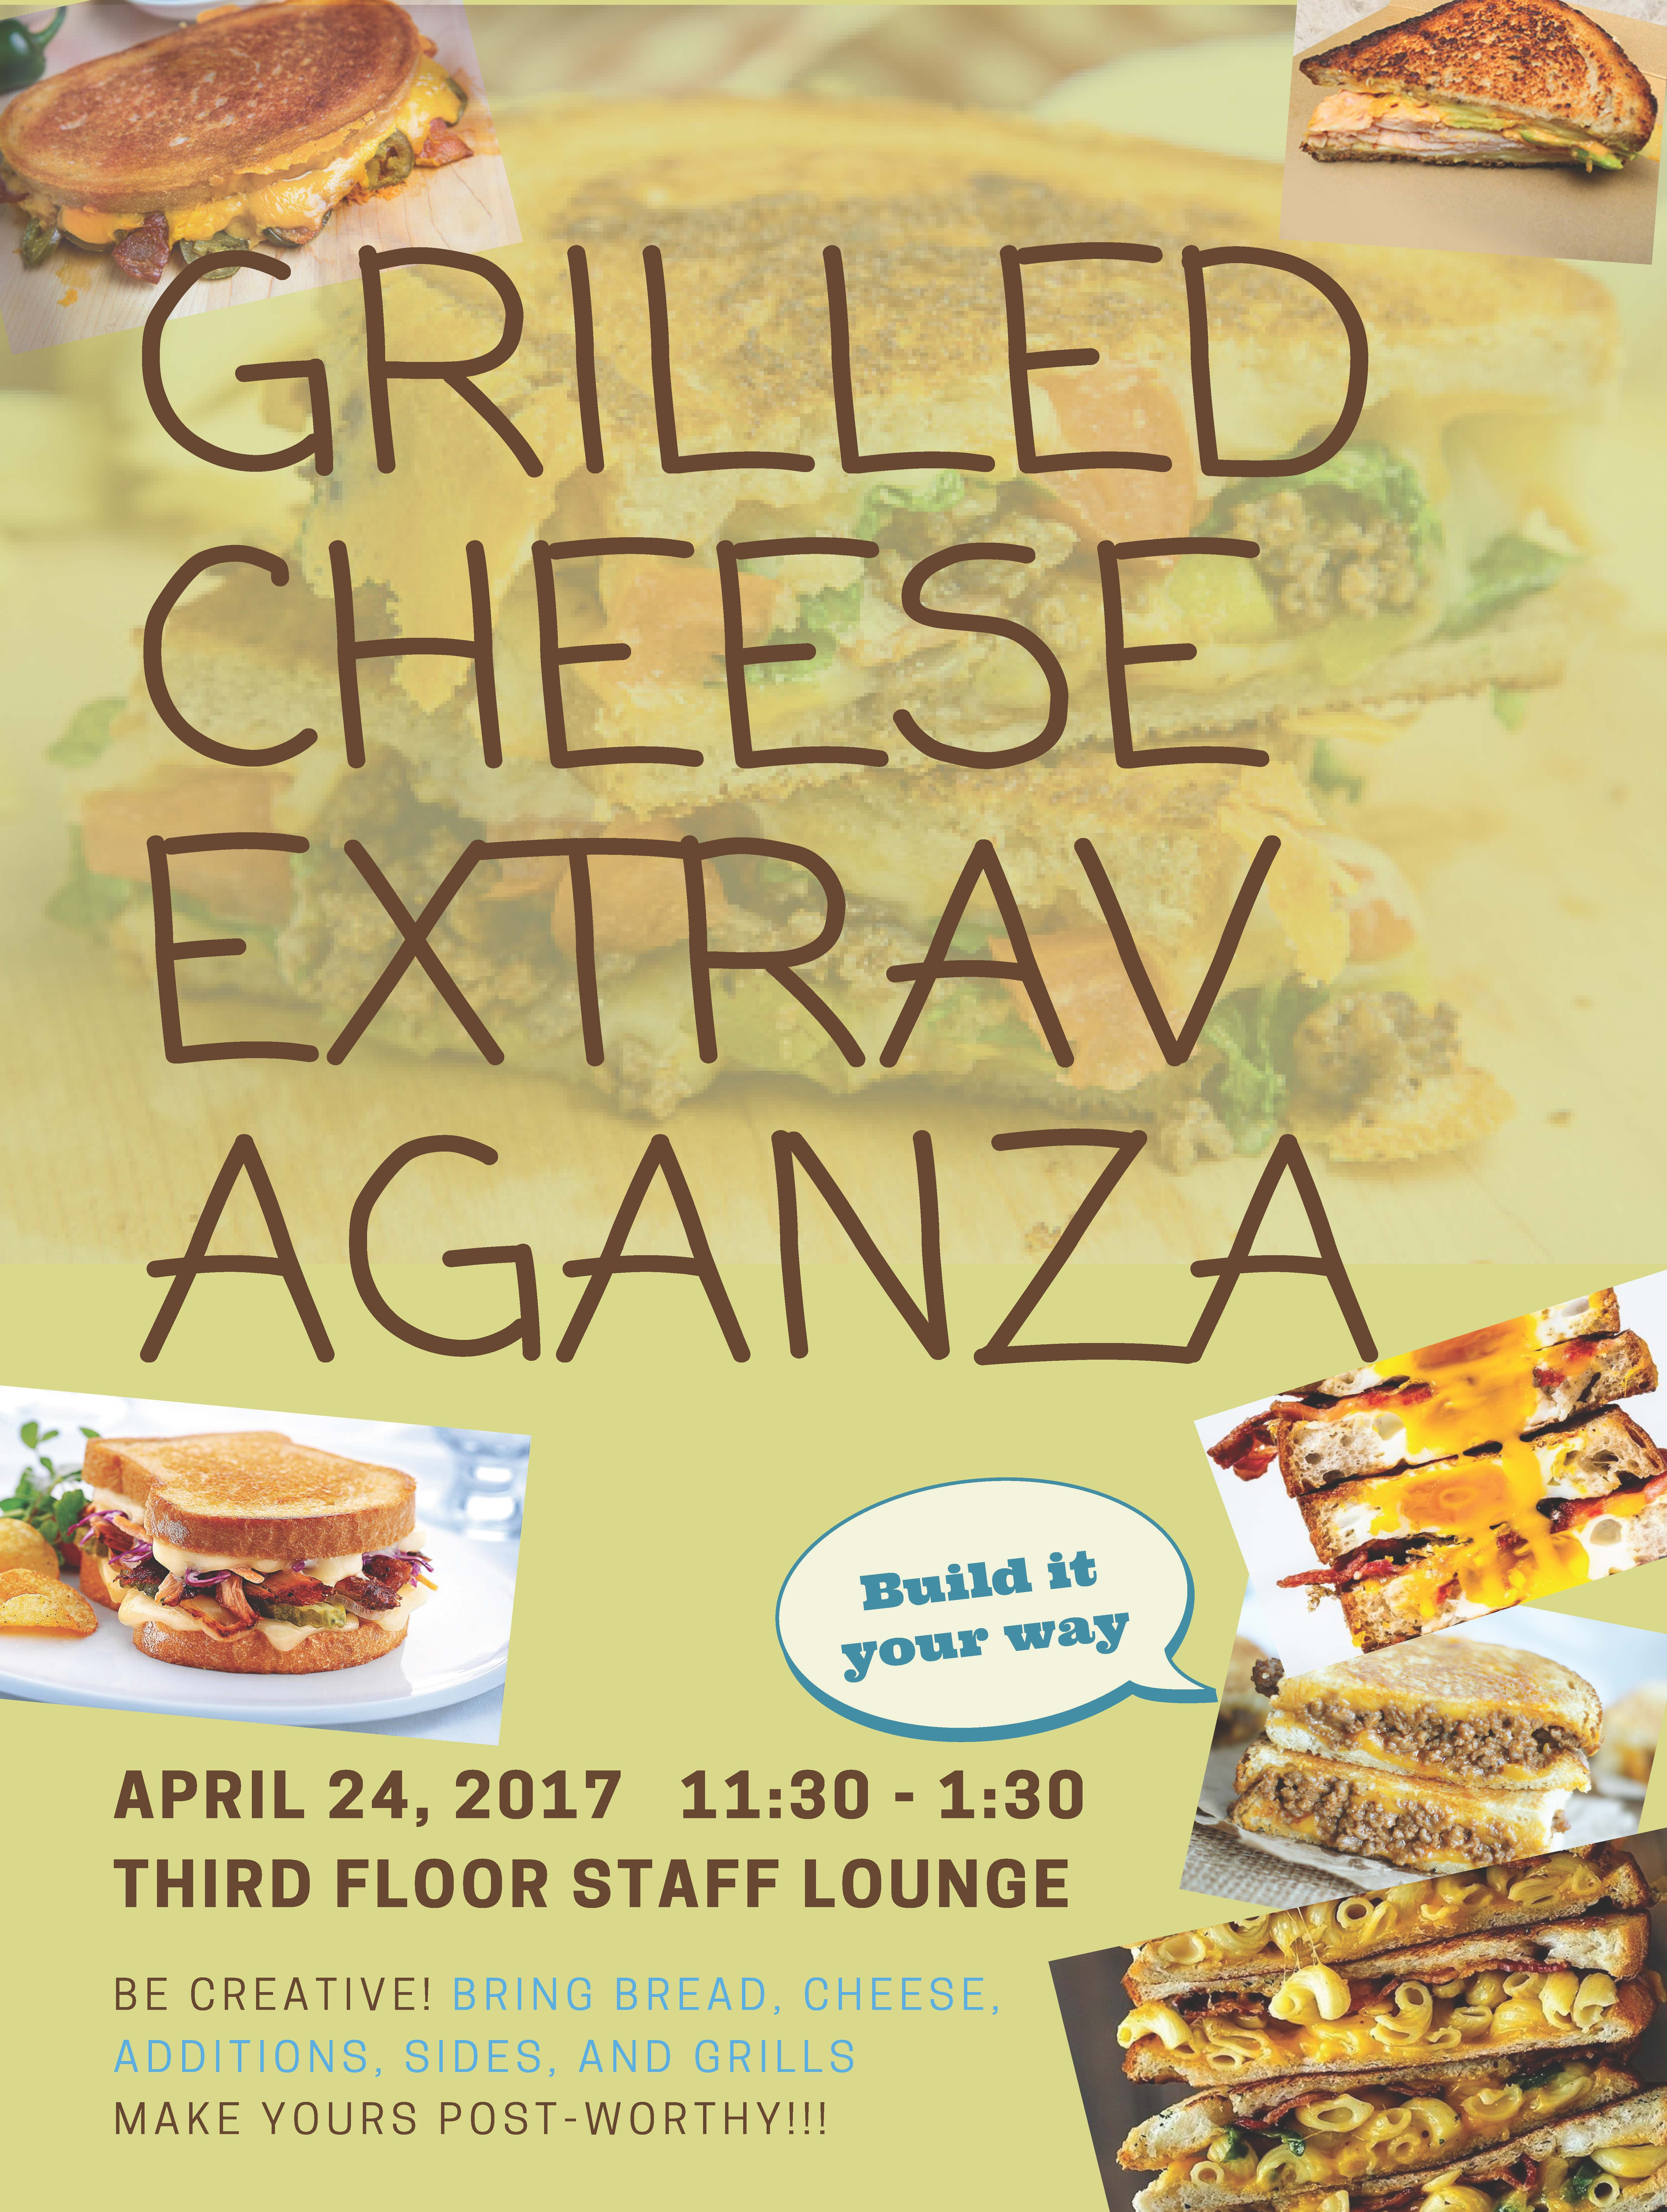 Grilled Cheese Extravaganza